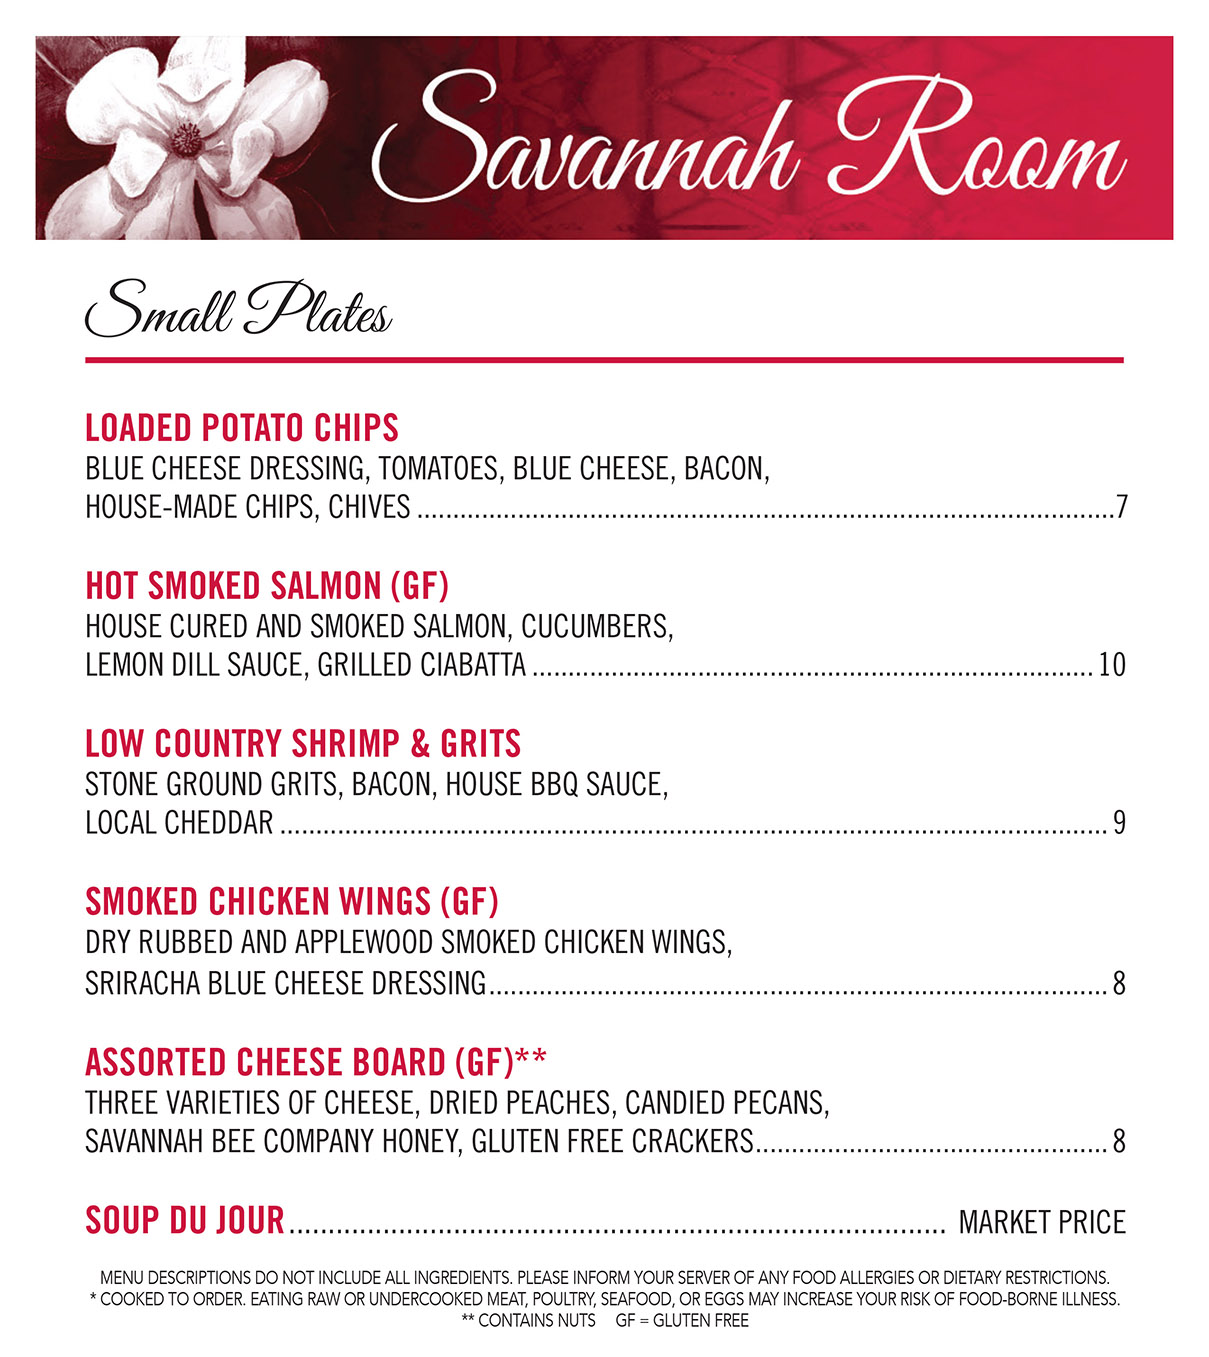 The Savannah Room At The Uga Hotel Athens Ga Restaurants